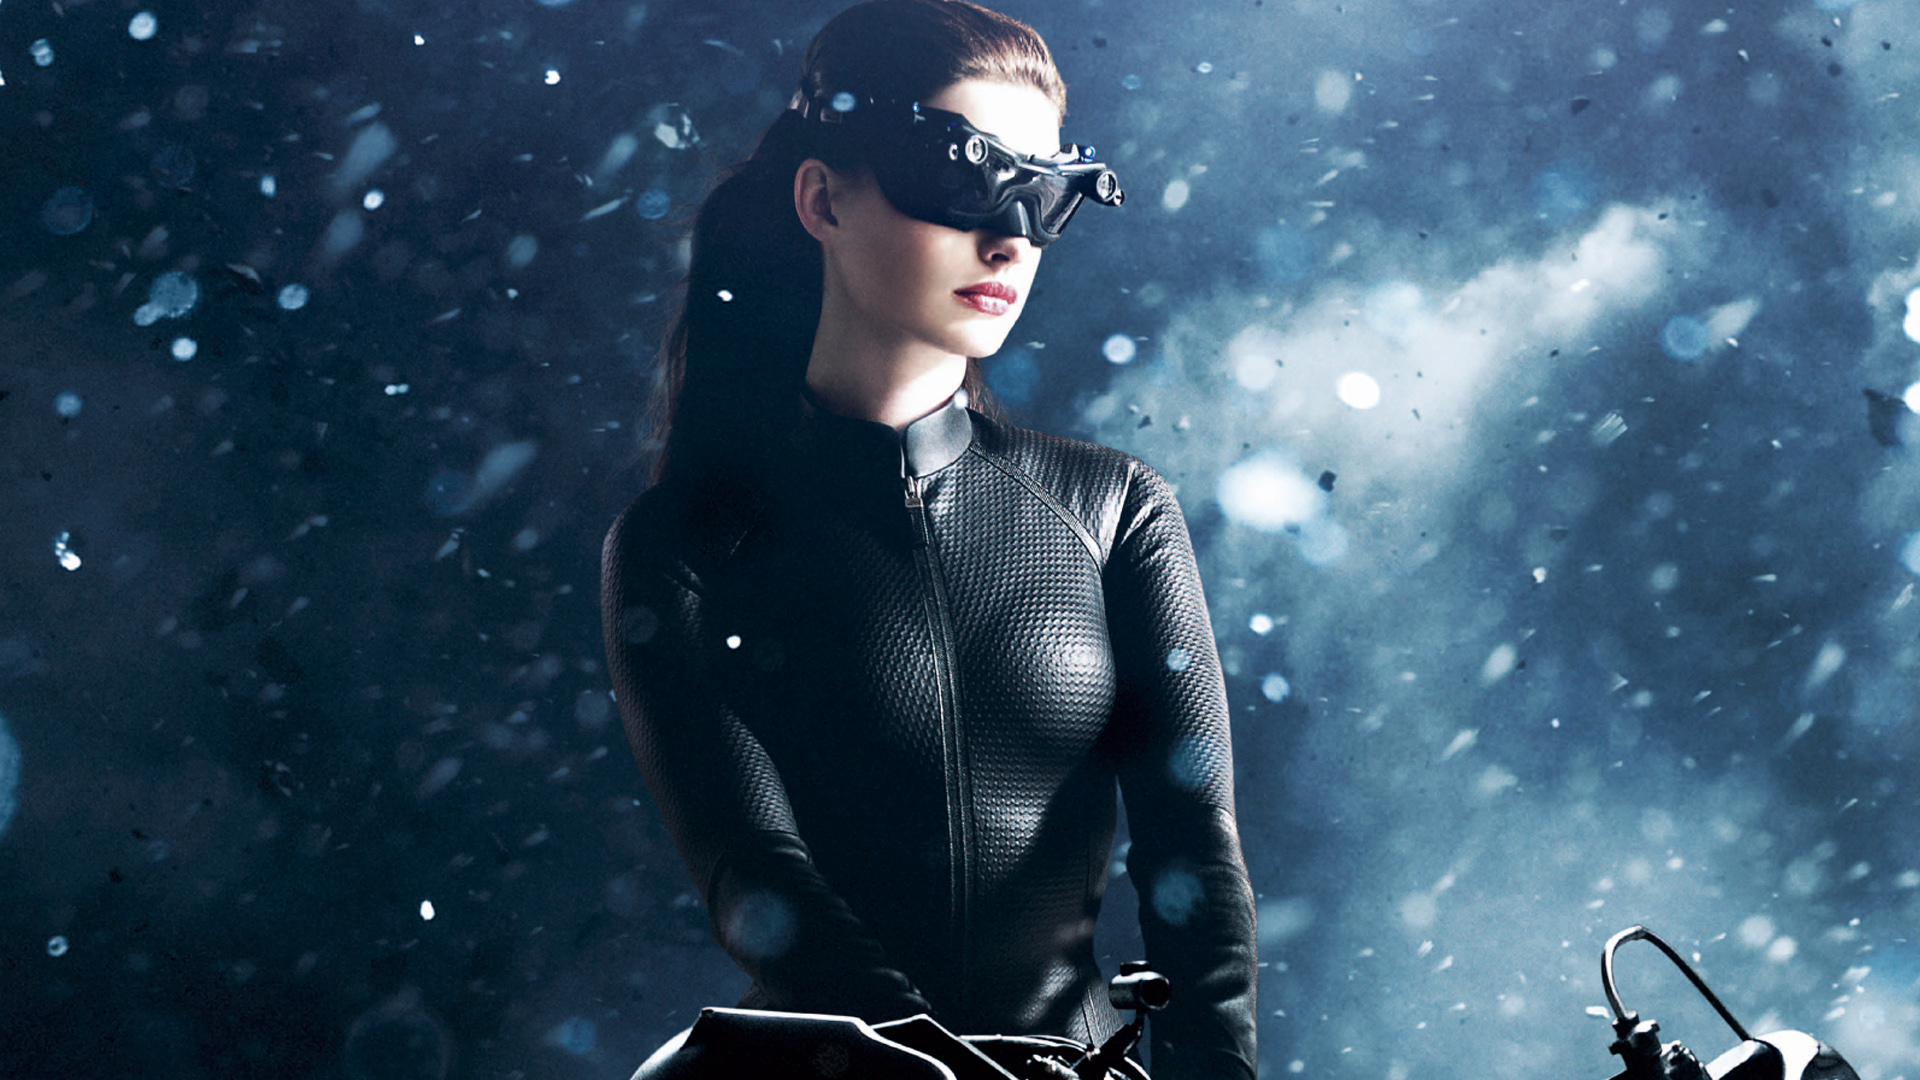 Anne Hathaway - Catwoman Wallpaper - 6